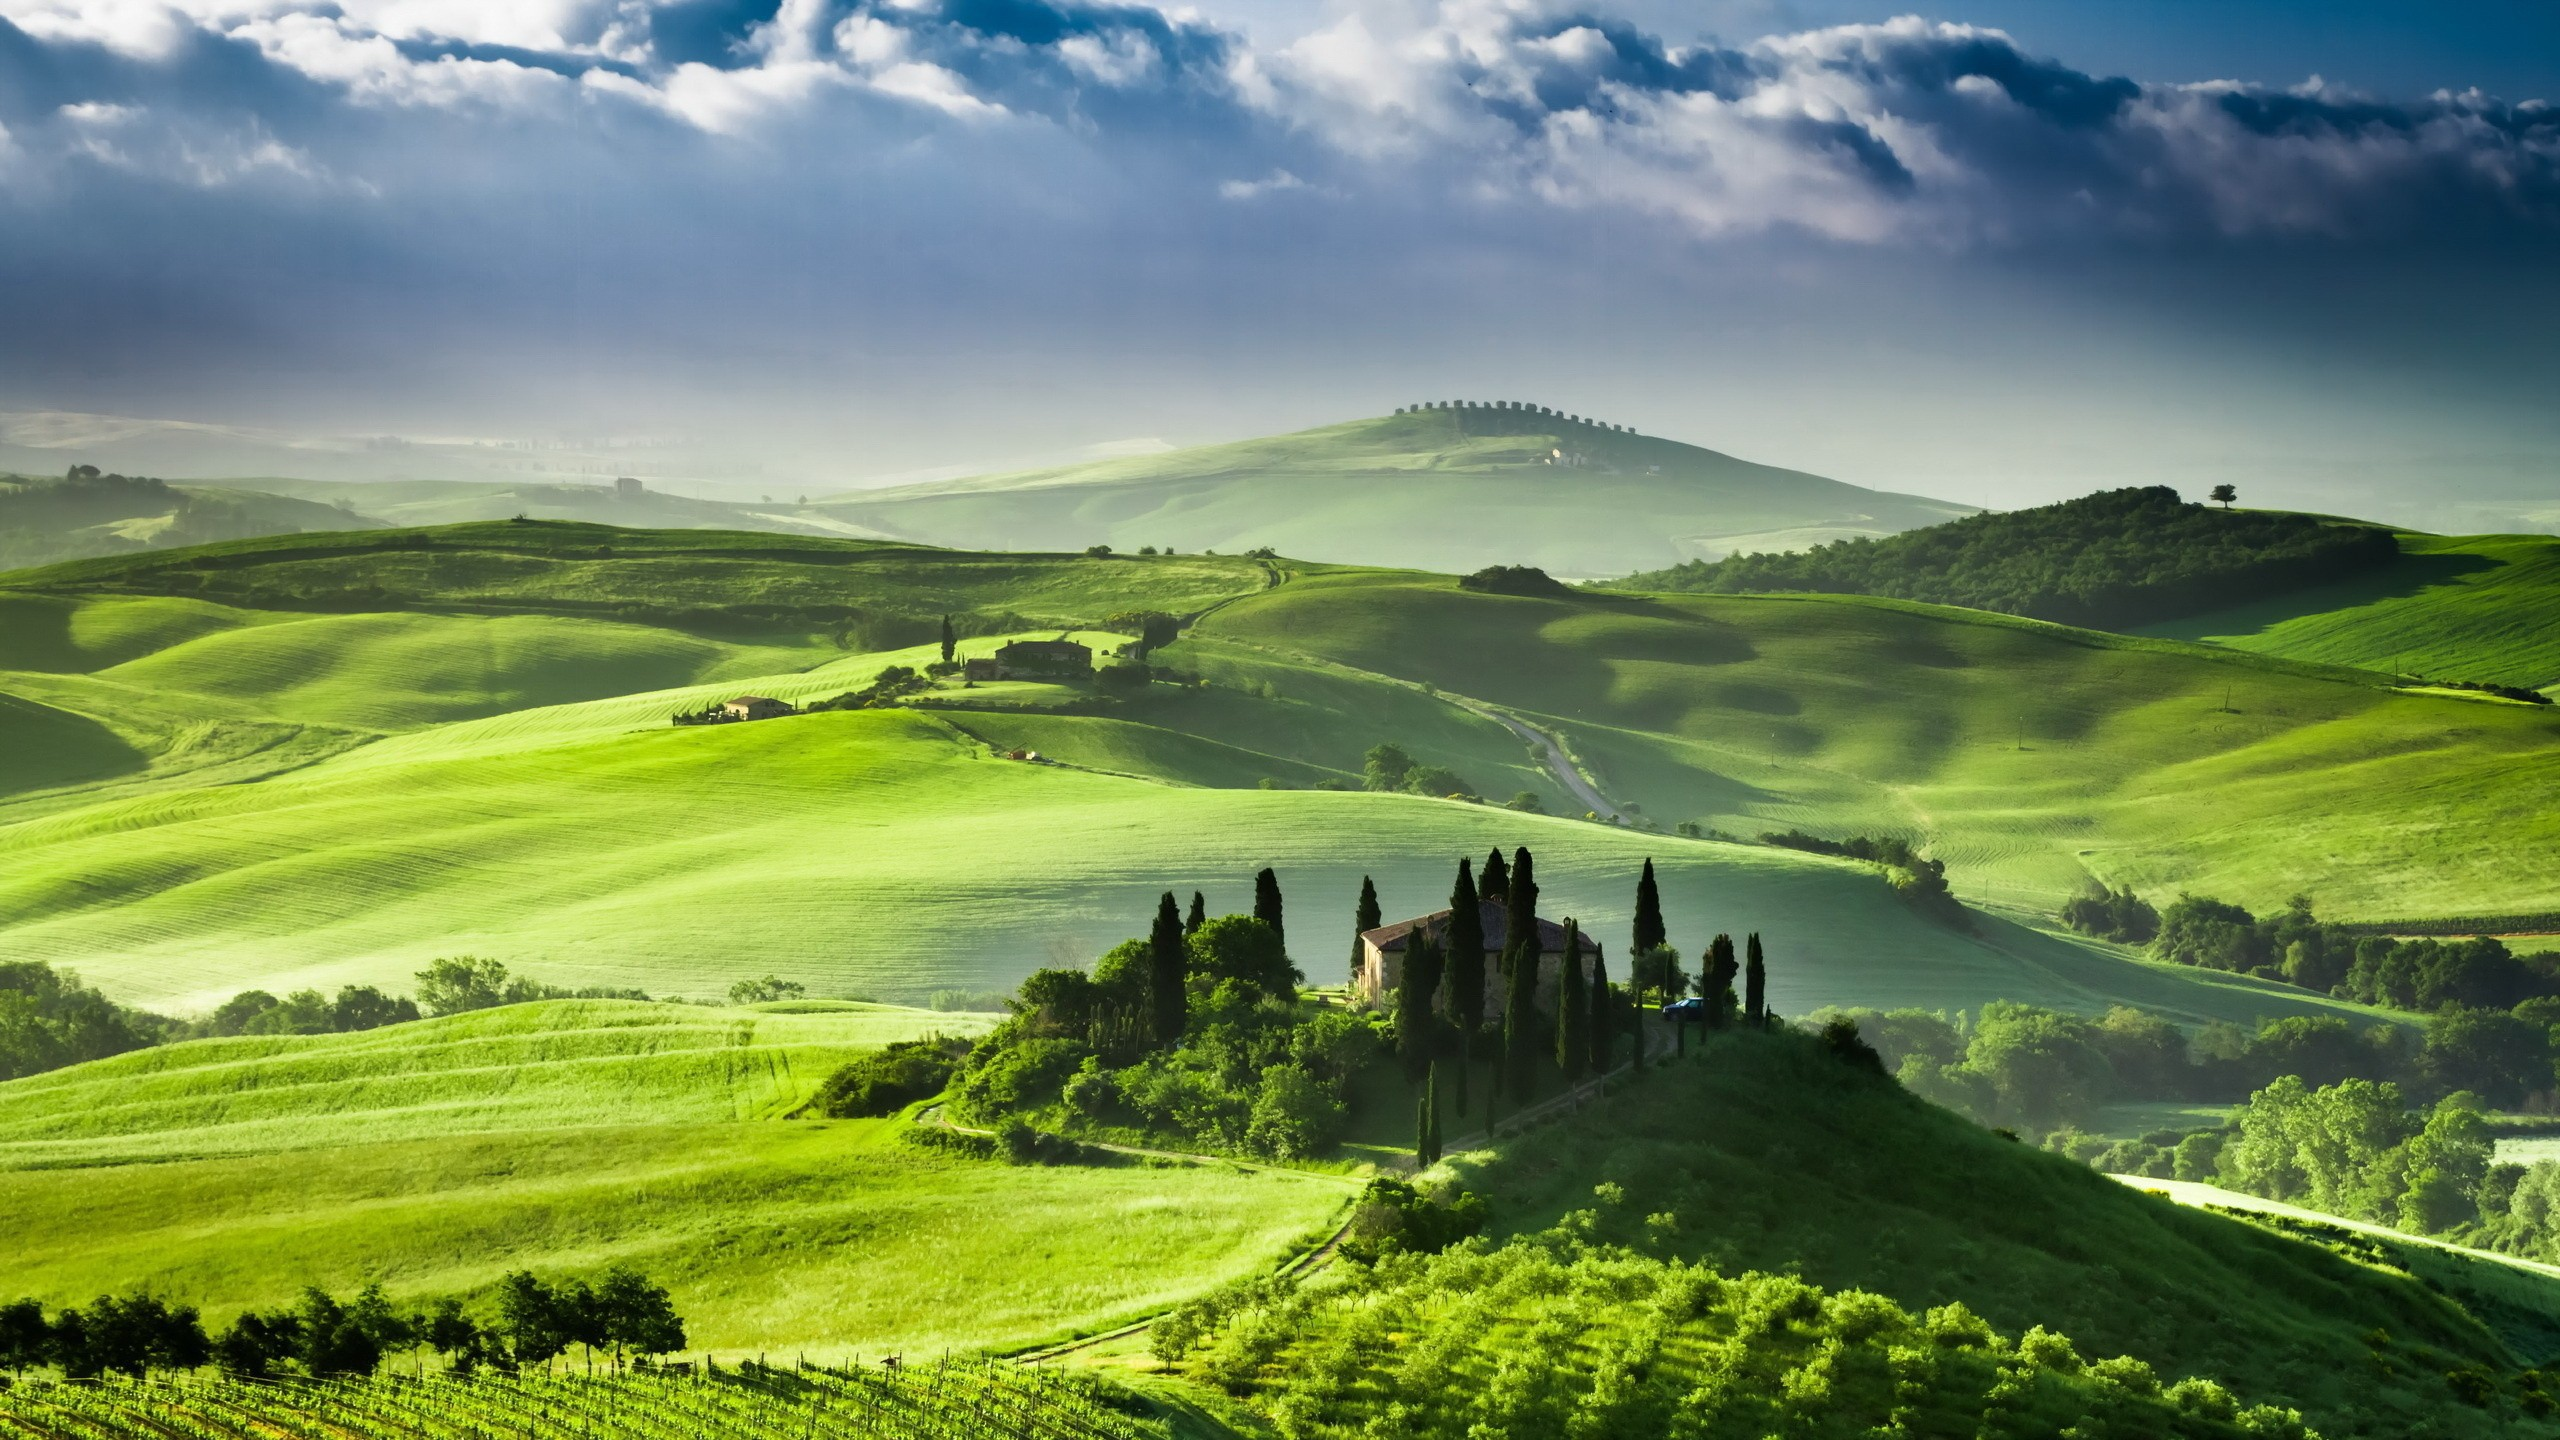 landscape Italy wallpapers and images   wallpapers pictures photos 2560x1440